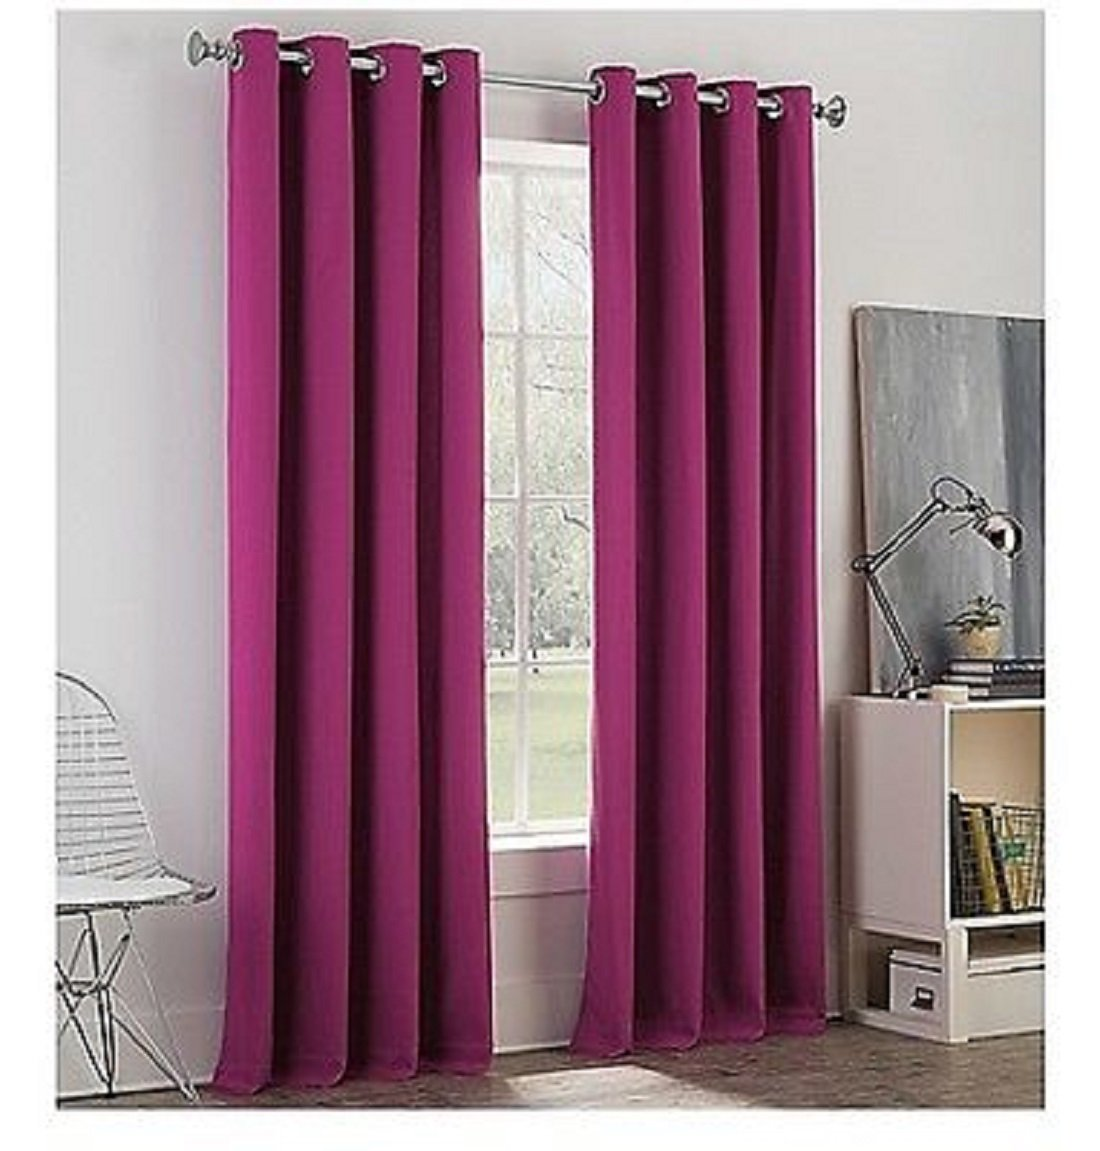 Newport College Cotton Grommet Window Curtain Panel Purple 50''x 84'' Length by Newport College (Image #1)